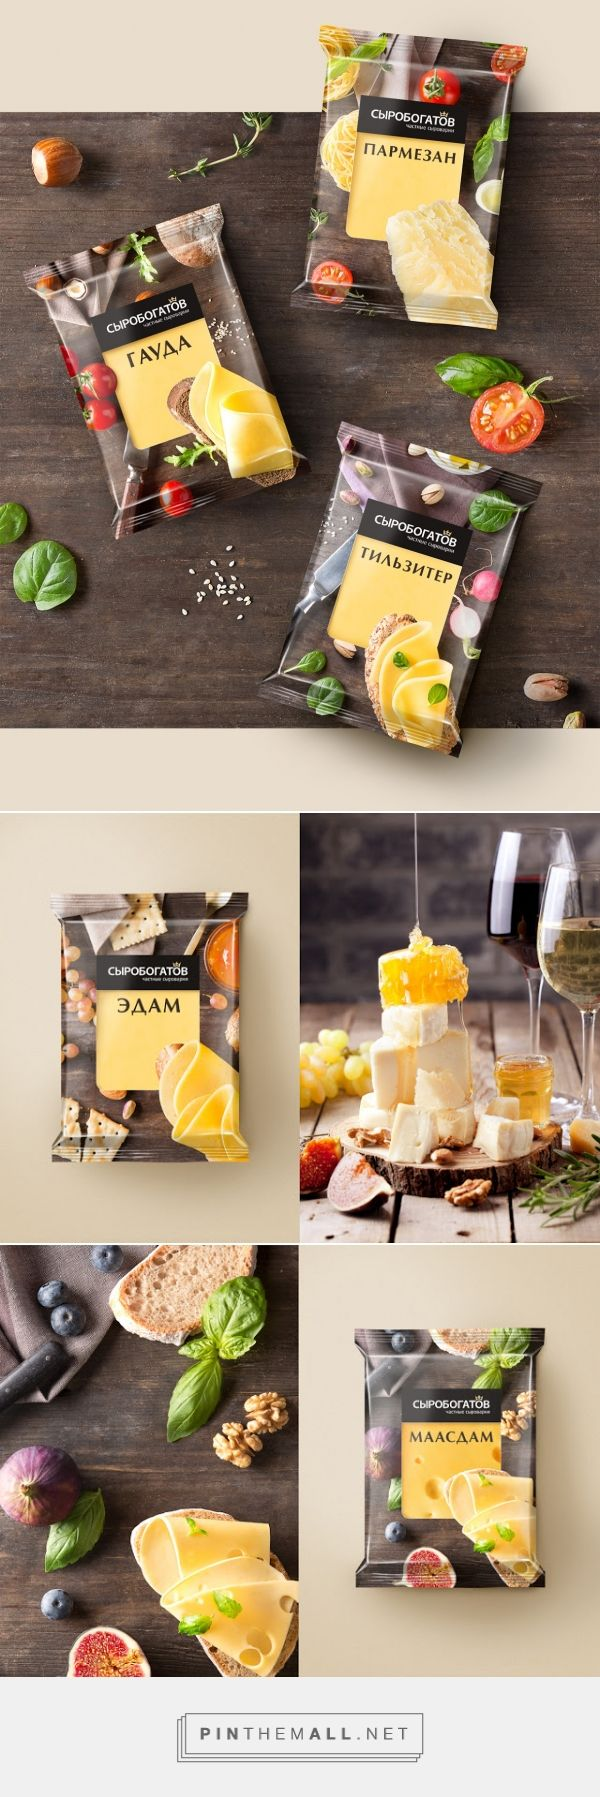 Syrobogatov on Packaging of the World - Creative Package Design Gallery - created via https://pinthemall.net